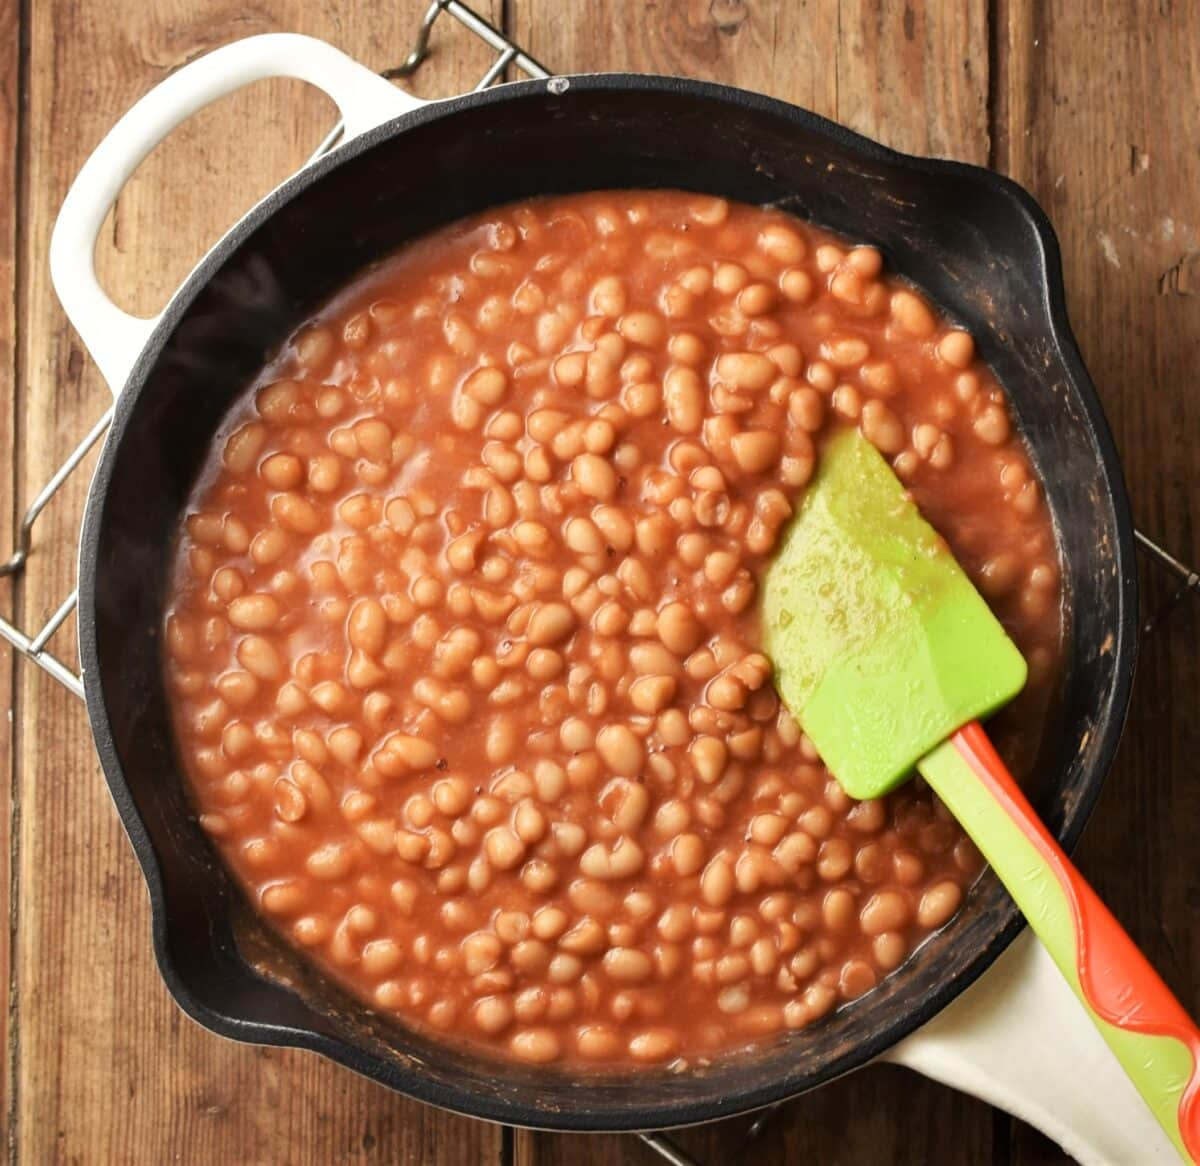 Top down view of beans in tomato sauce in skillet with green spatula.